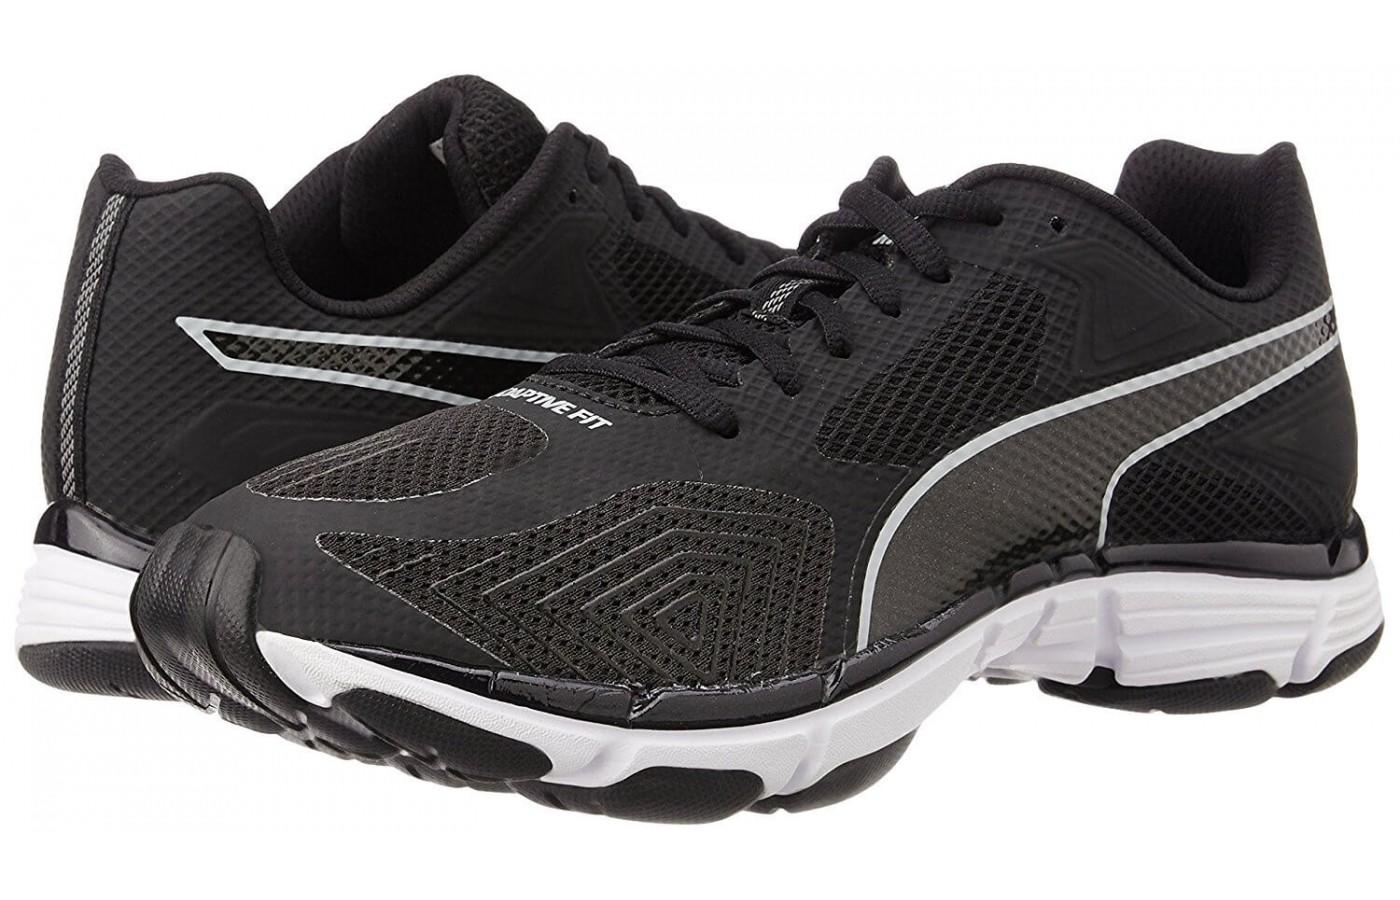 the Puma Mobium Ride v2 is a highly responsive trainer